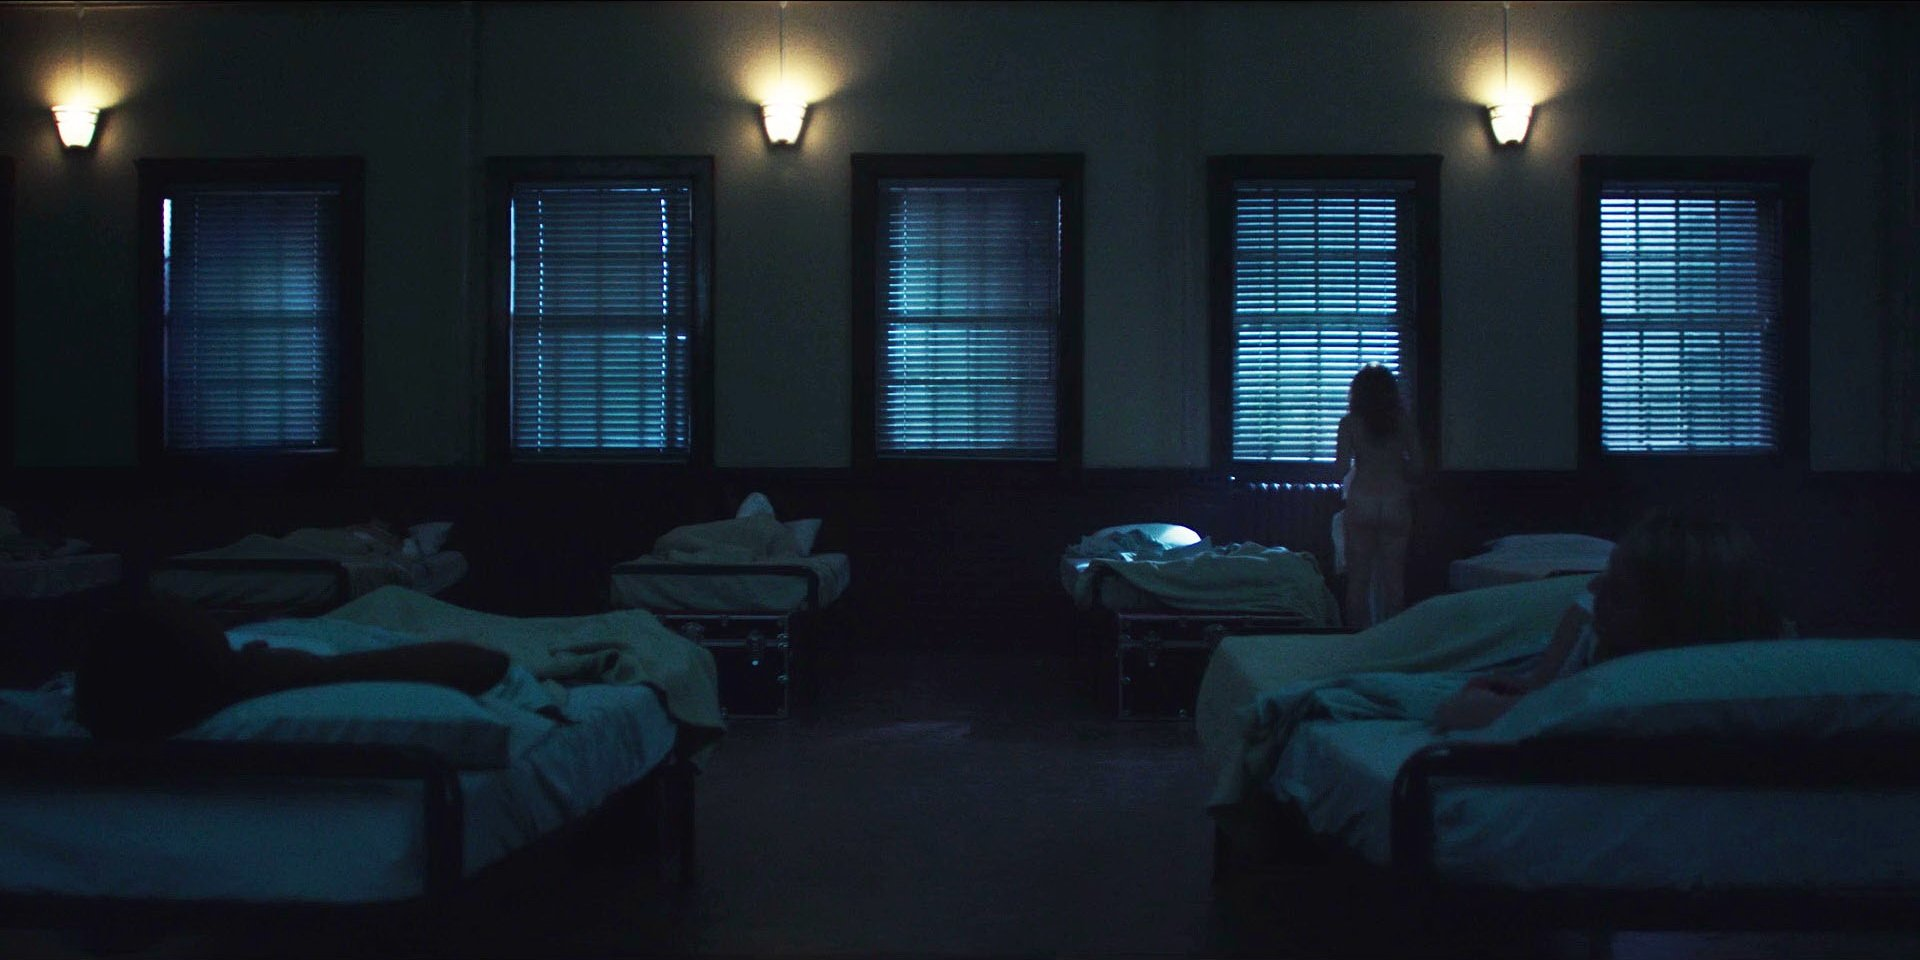 Madeline Brewer - The Handmaid's Tale s01e01 (2017)